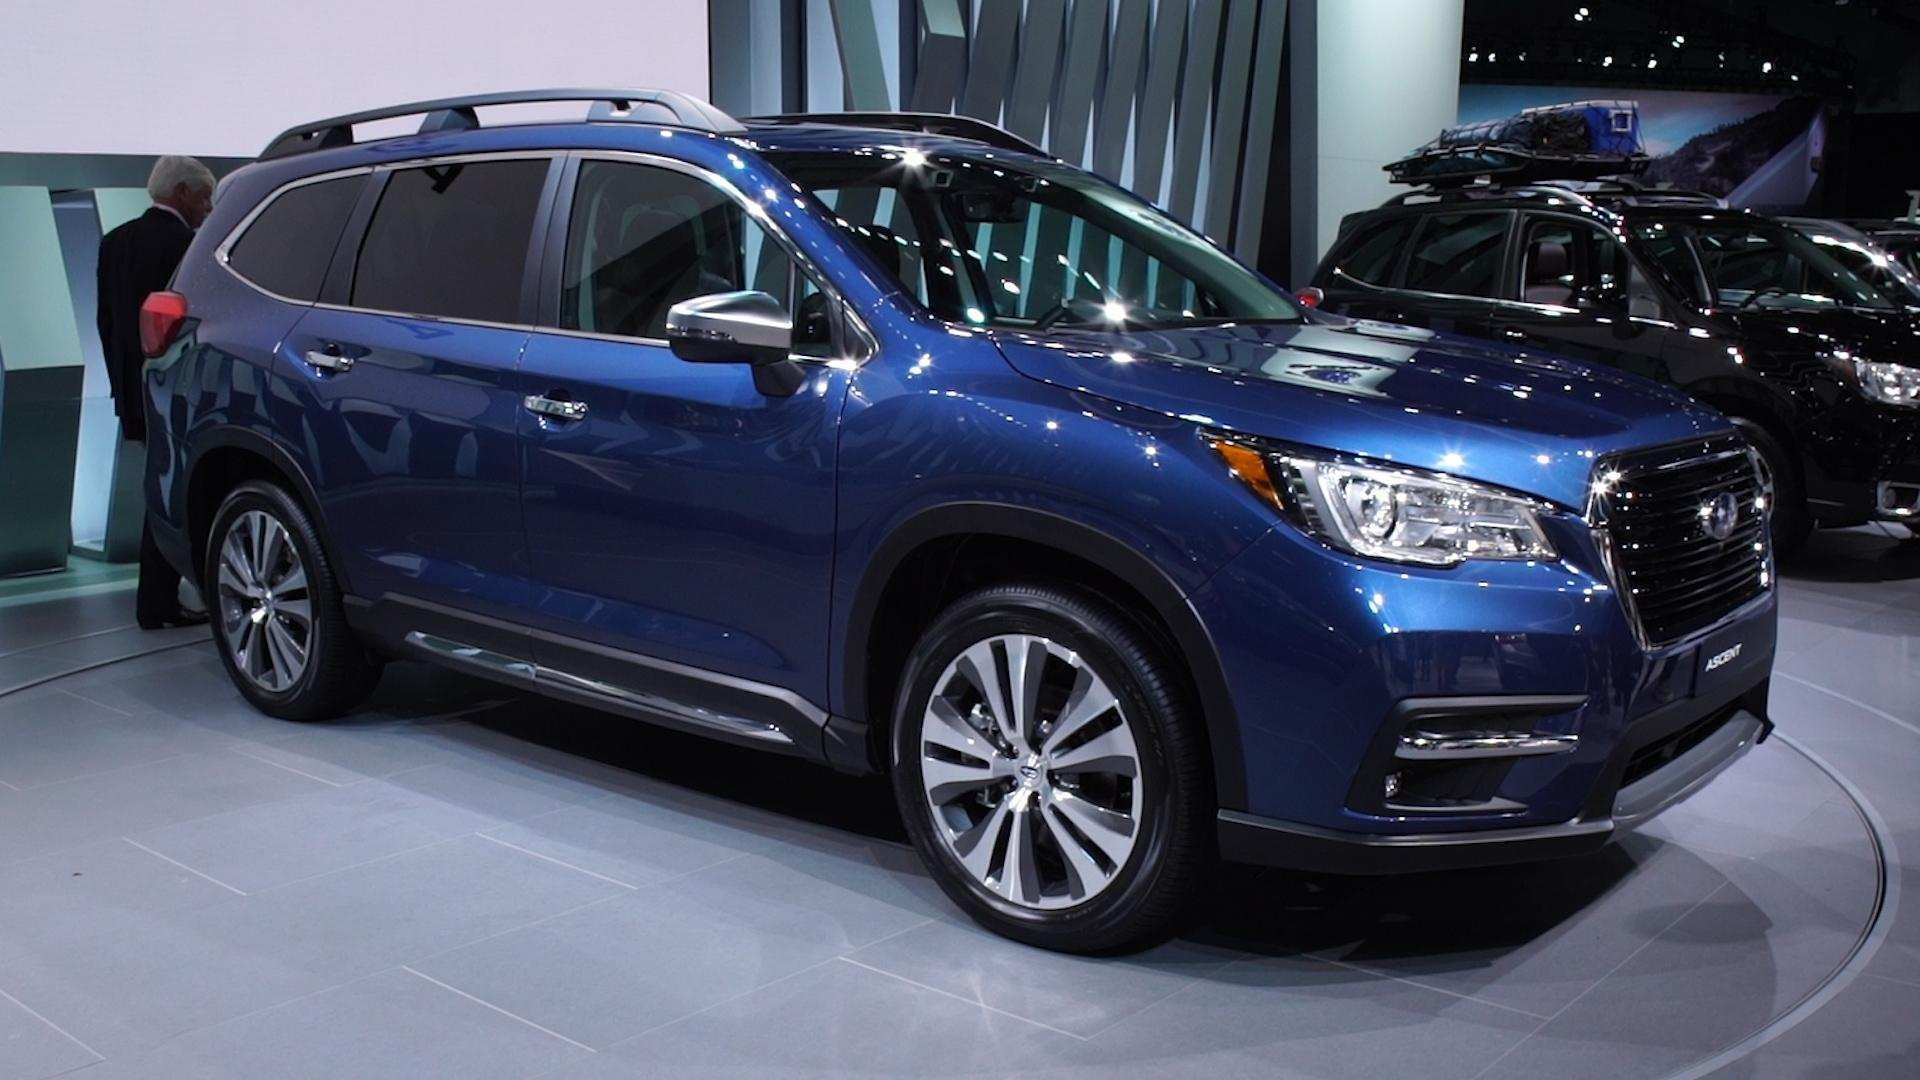 48 The Best 2019 Subaru Suv Review And Release Date